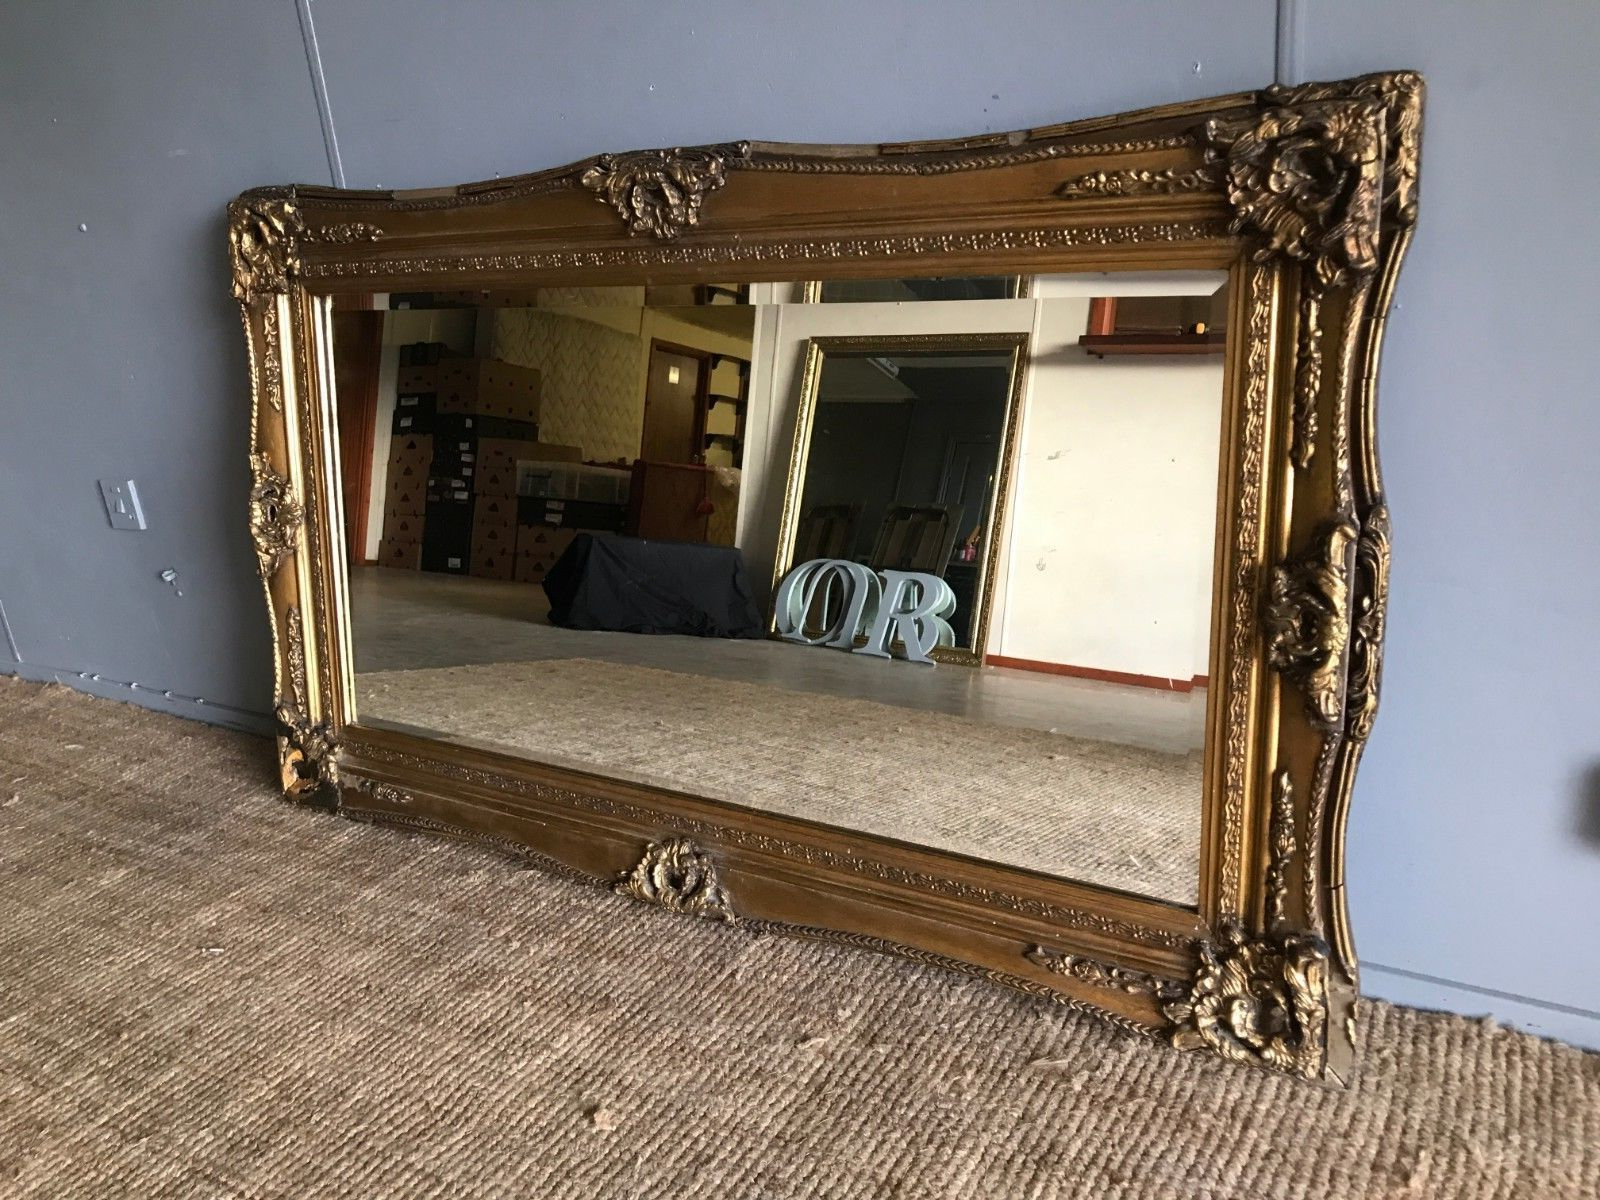 Huge Very Large Ornate Genuine Antique Vintage Gilt Frame Bevelled Wall  Mirror Intended For Best And Newest Very Large Wall Mirrors (Gallery 16 of 20)